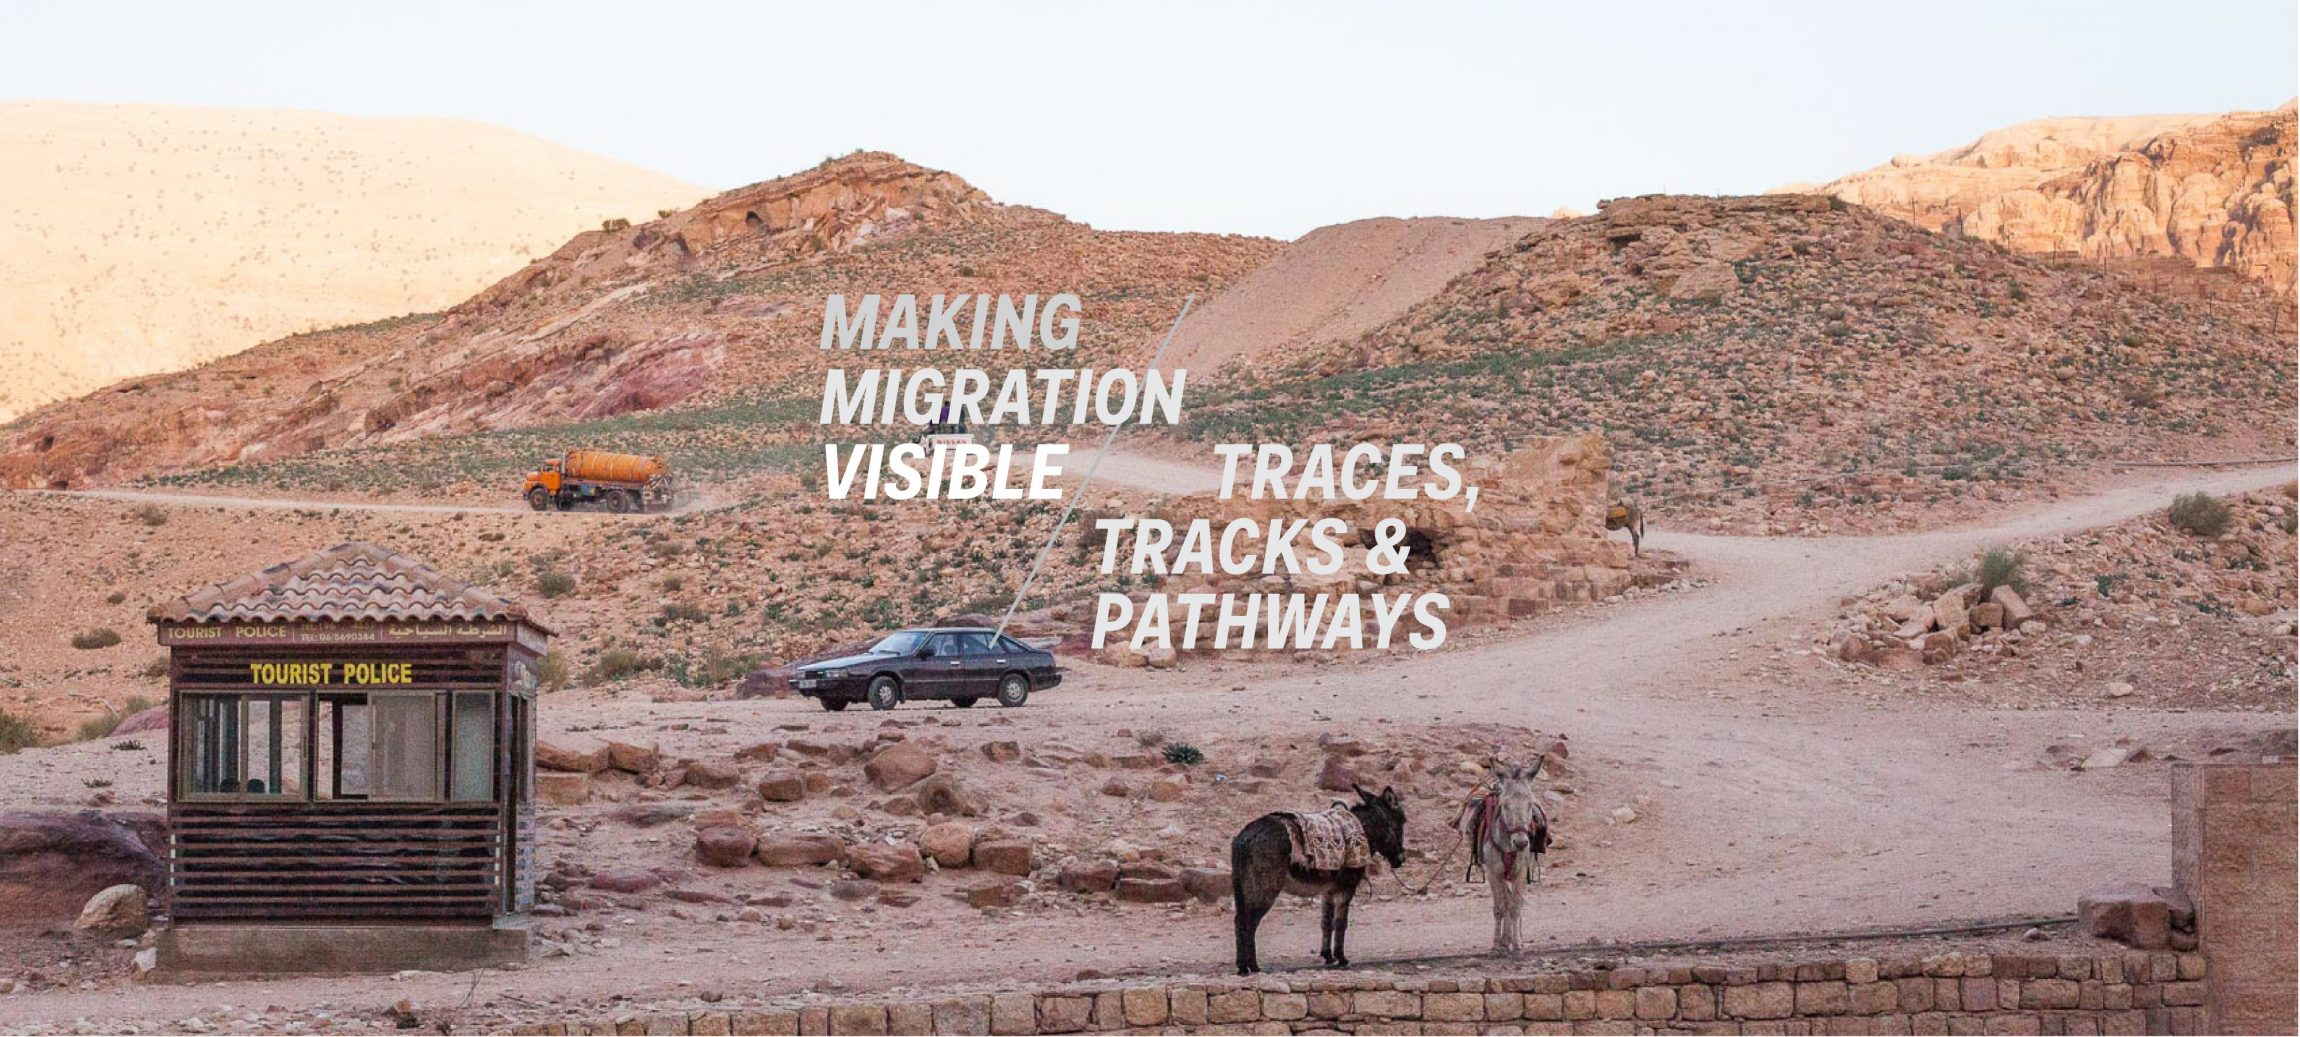 Making Migration Visible: Traces, Tracks & Pathways image